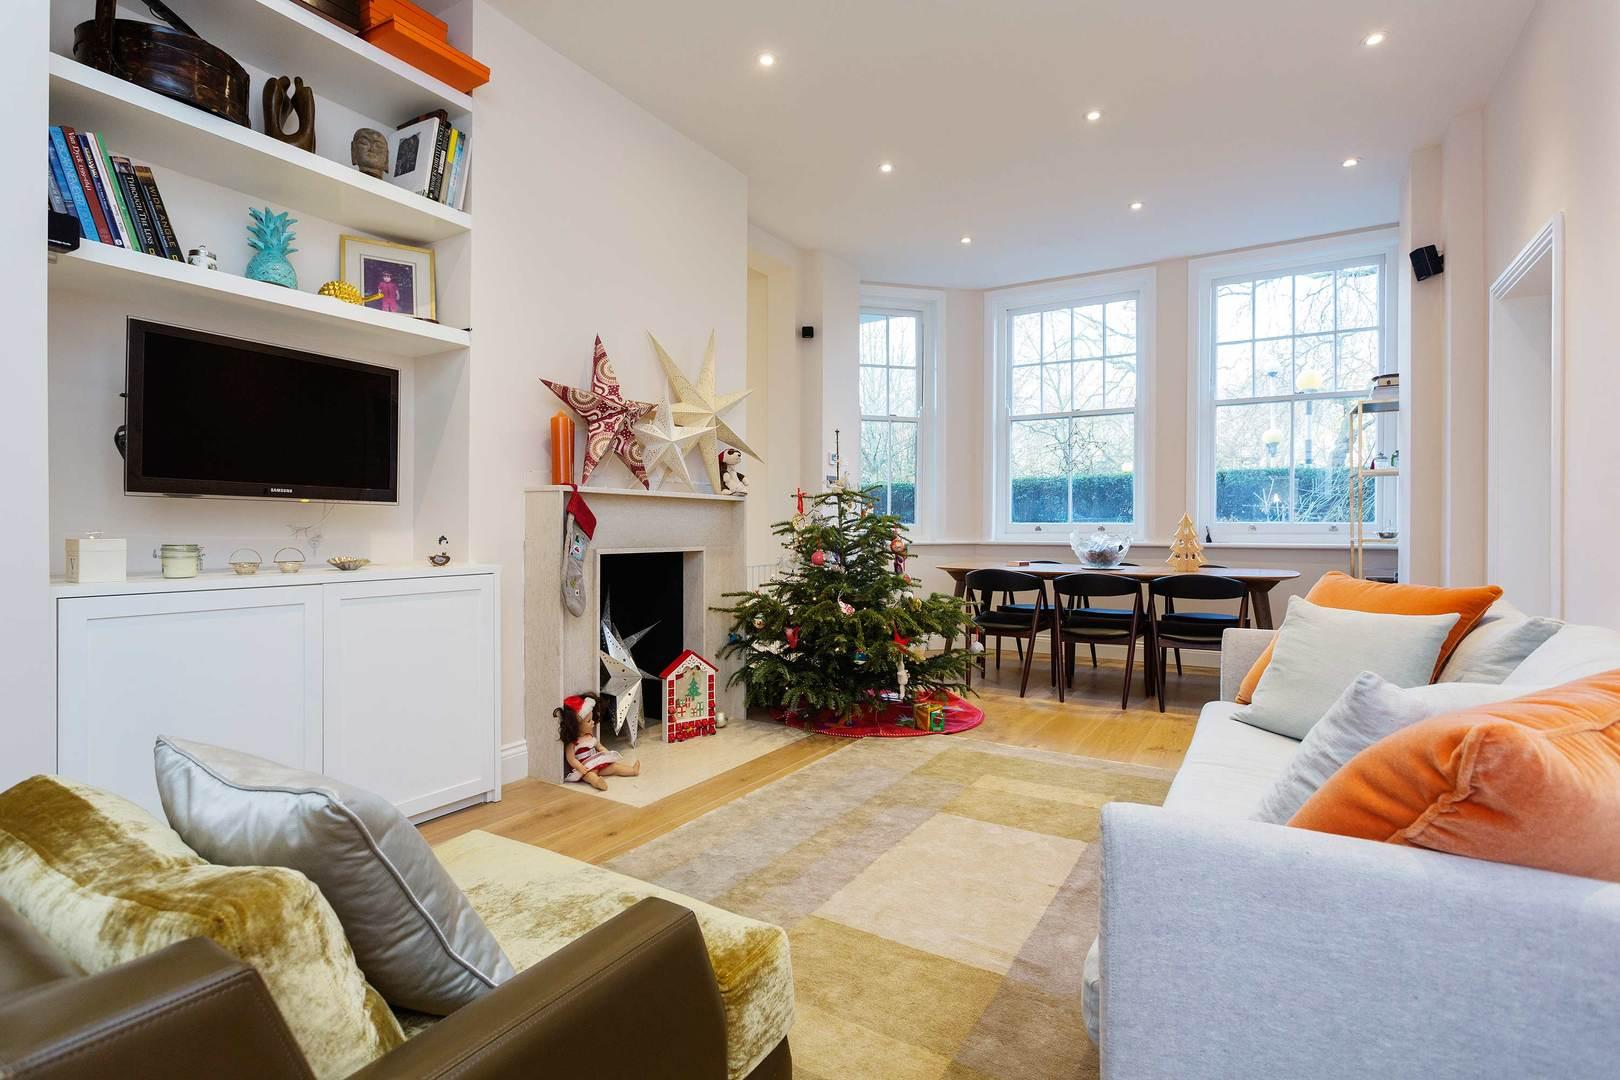 Property Image 1 - Tasteful Battersea Apartment with Spacious Interior